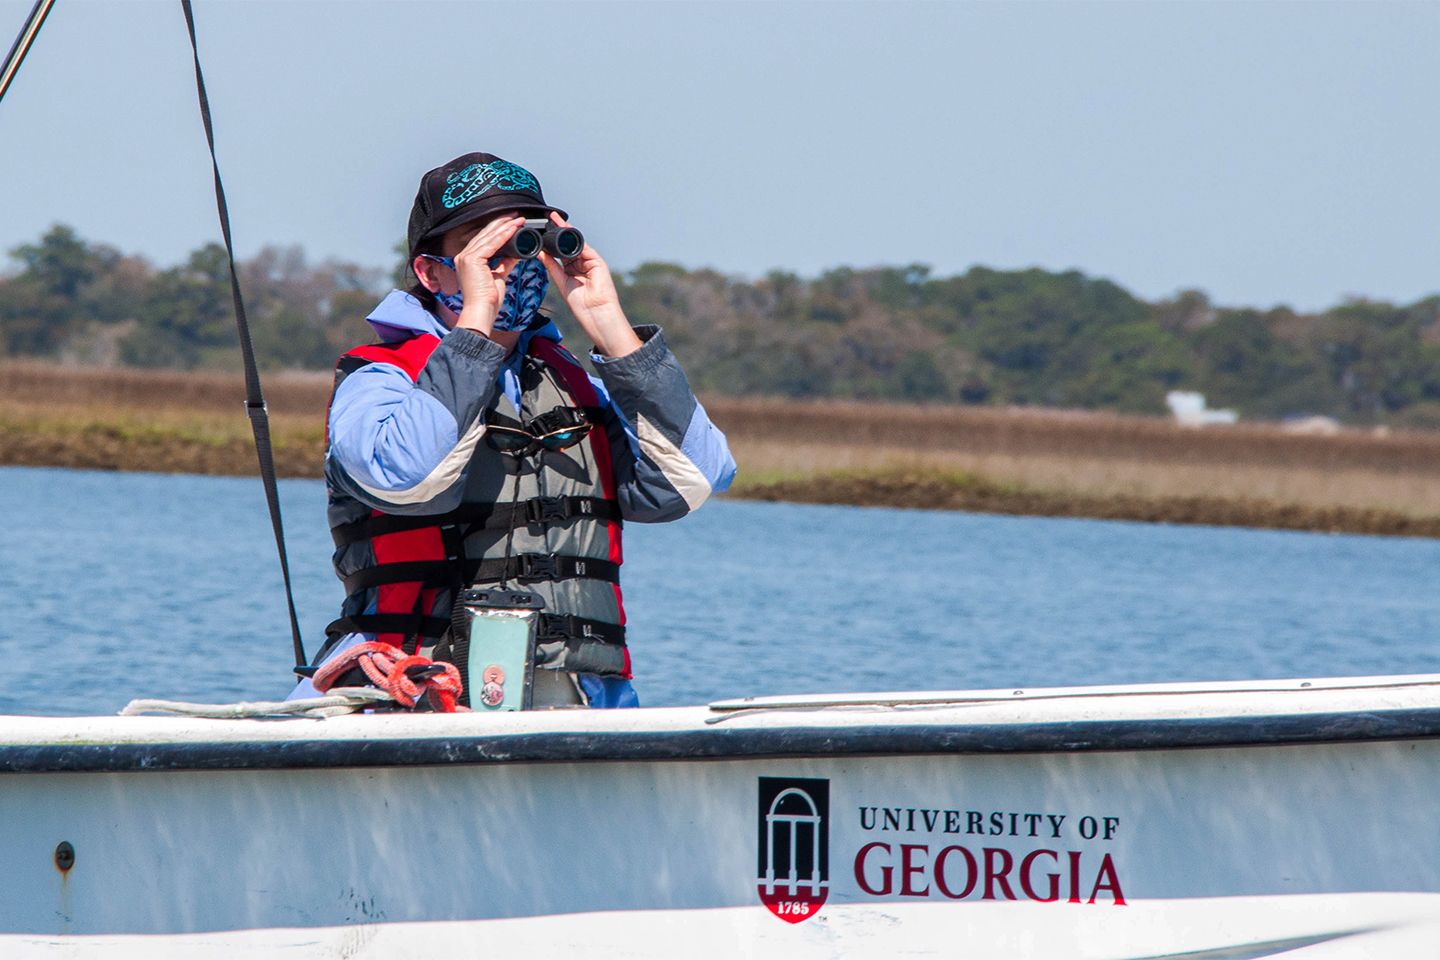 A person looks through binoculars on a boat